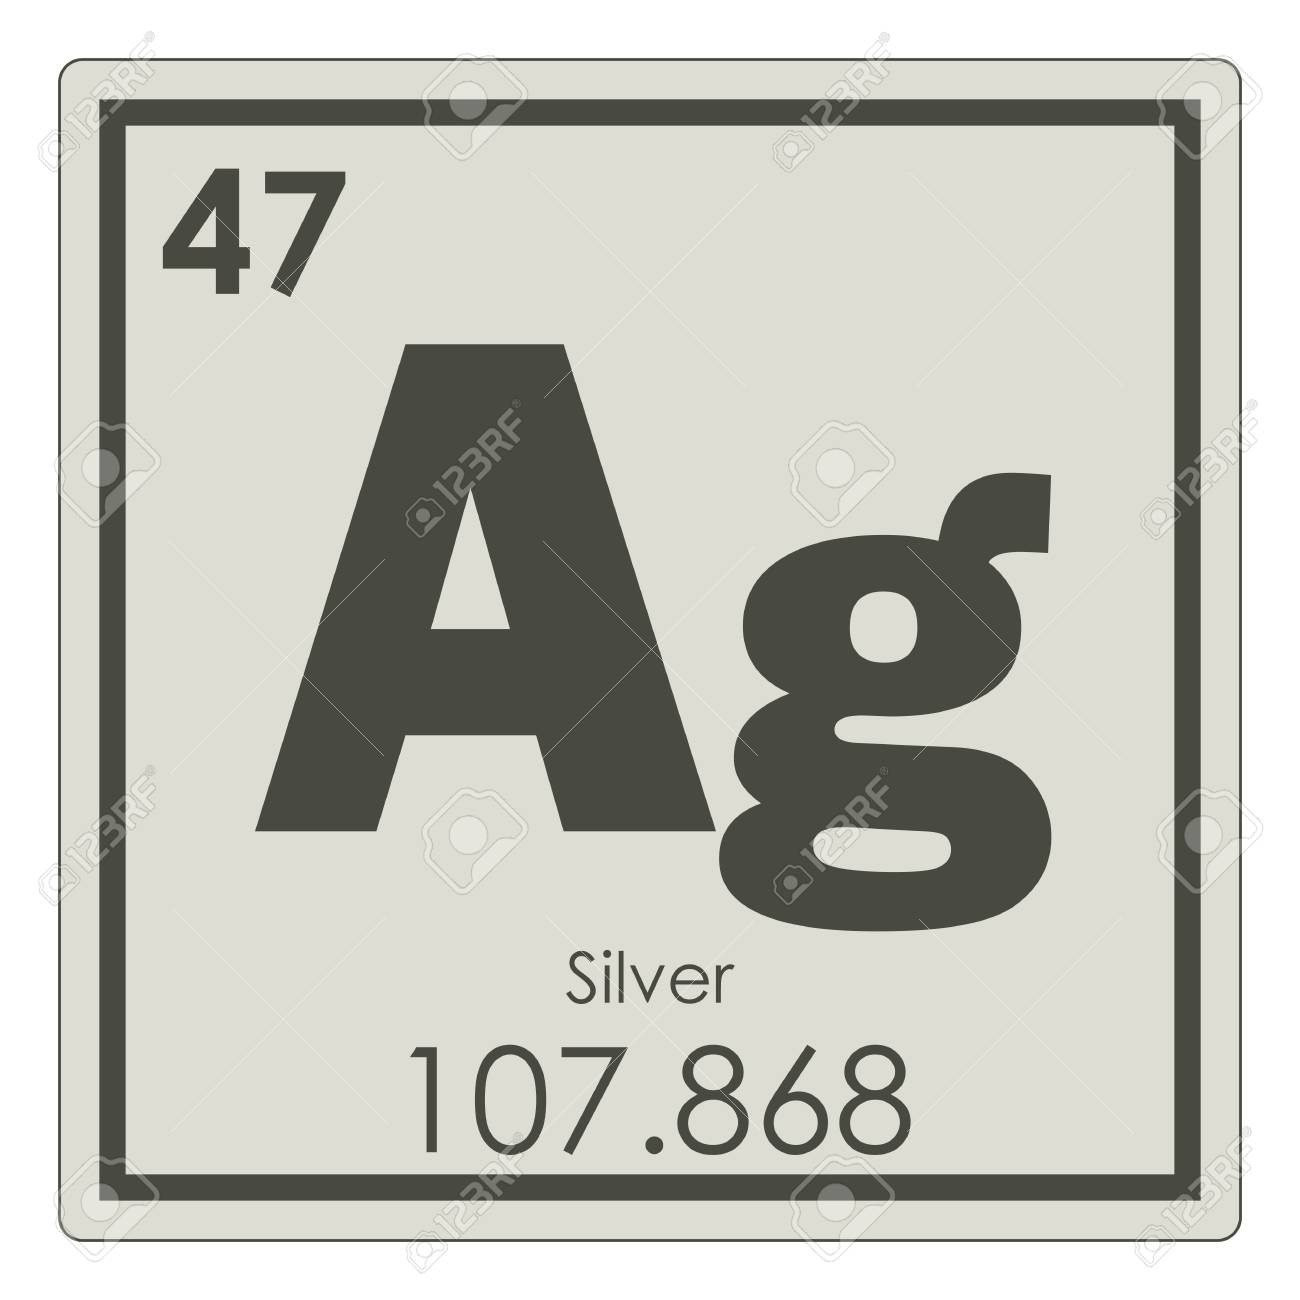 Silver Chemical Element Periodic Table Science Symbol Stock Photo